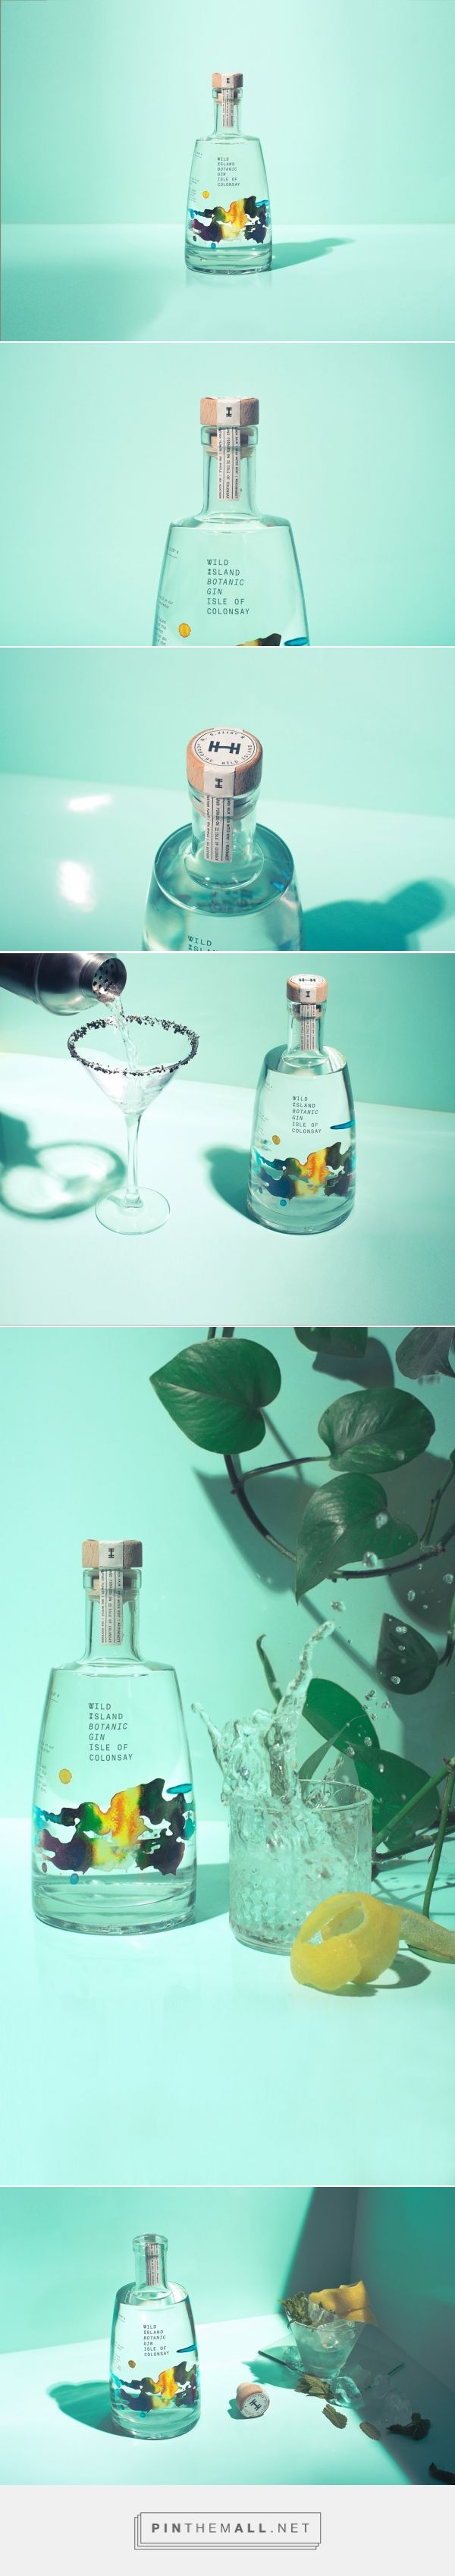 Wild Island - Botanical #Gin packaging design by Thirst - http://www.packagingoftheworld.com/2017/05/wild-island-botanical-gin.html